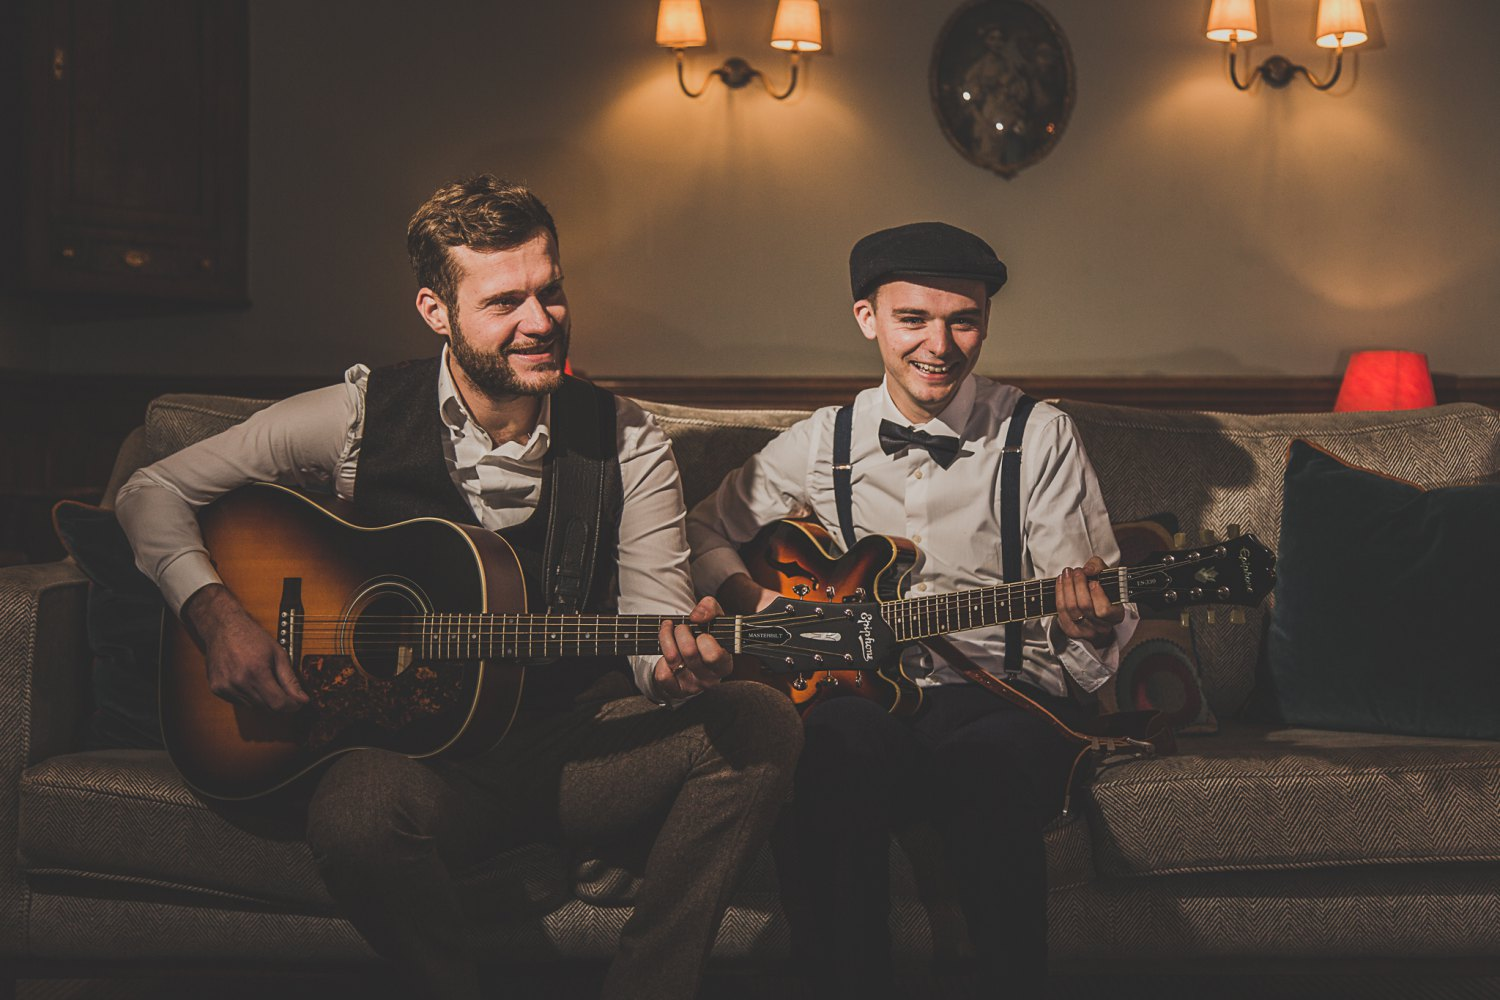 Two men playing the guitar